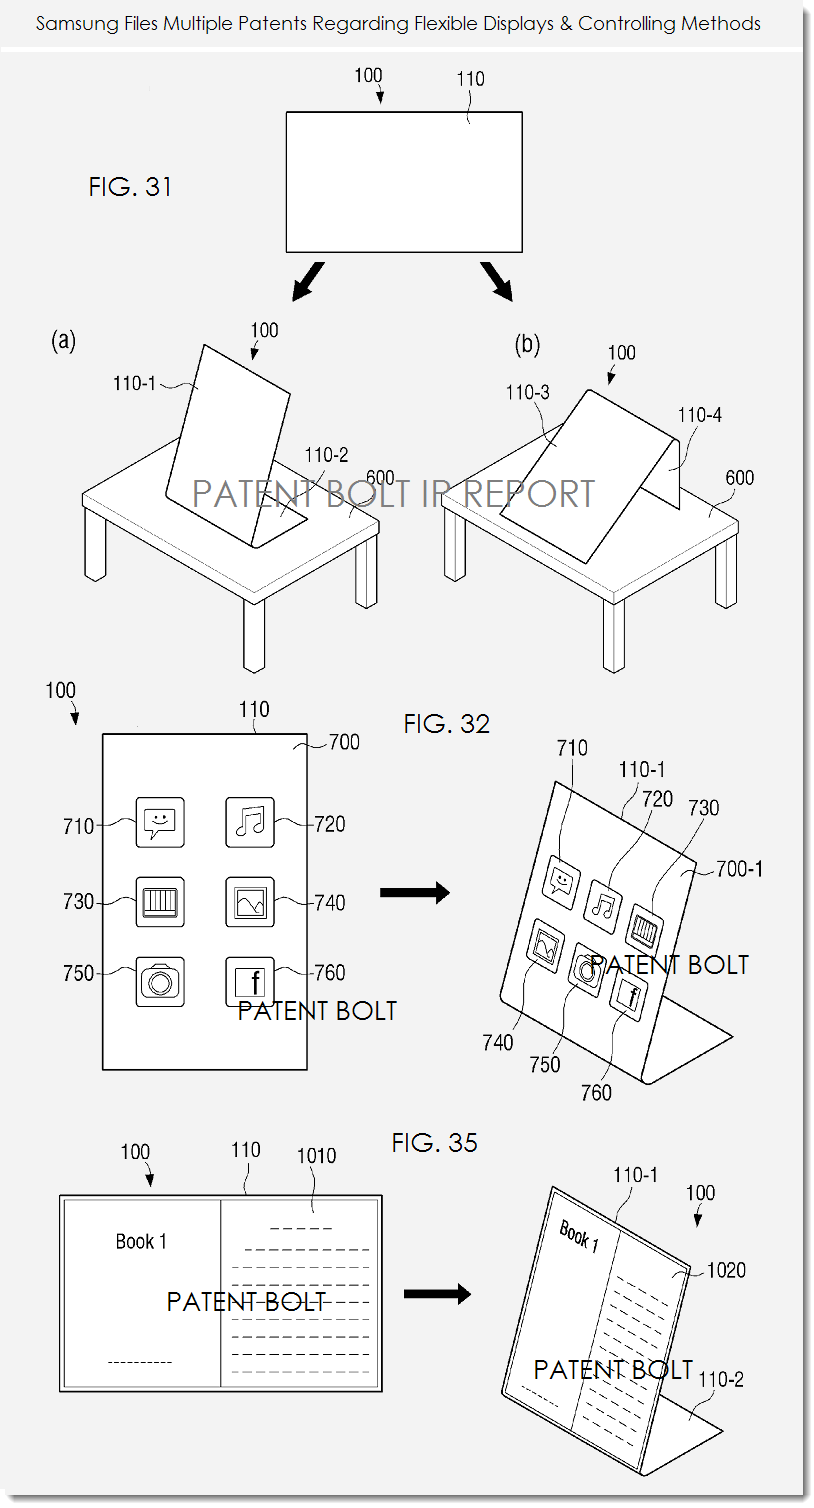 samsung invents a smart cubed device that uses a polygonal 3d ui and 22 Inch Samsung LED 4af samsung flex display methods patent a